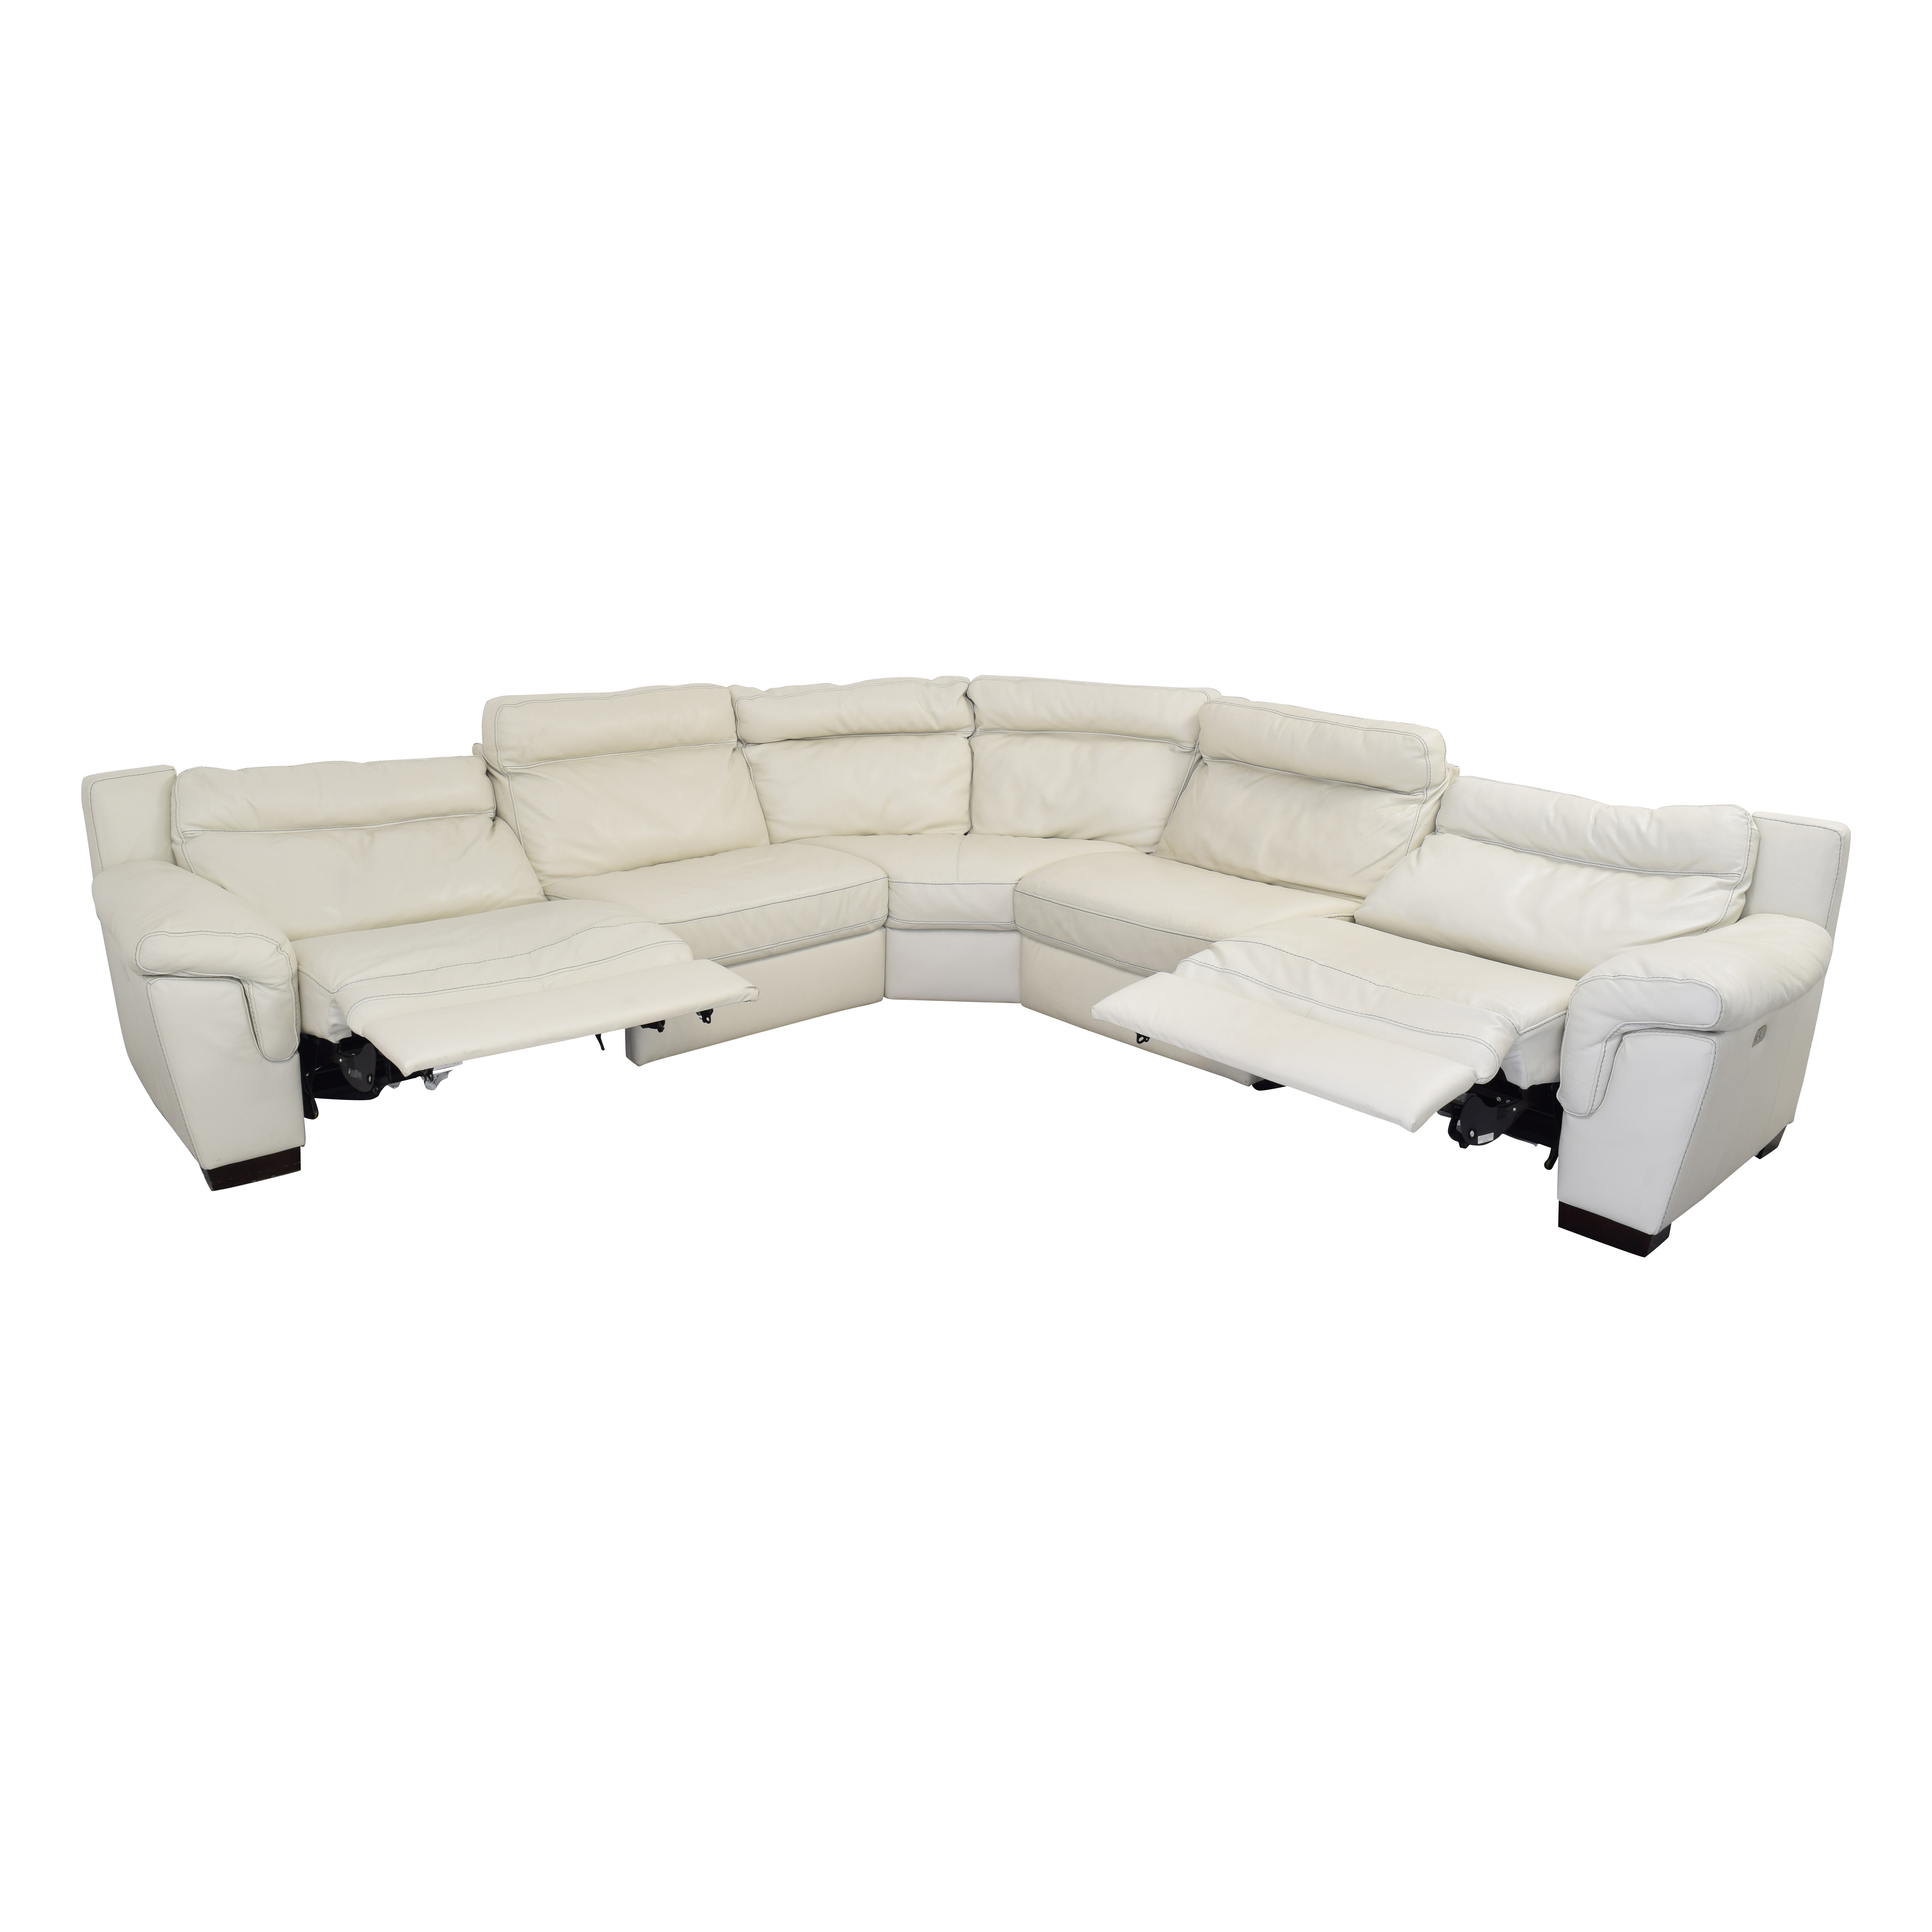 Macy's Macy's Leather Sectional Sofa with Reclining Seats used